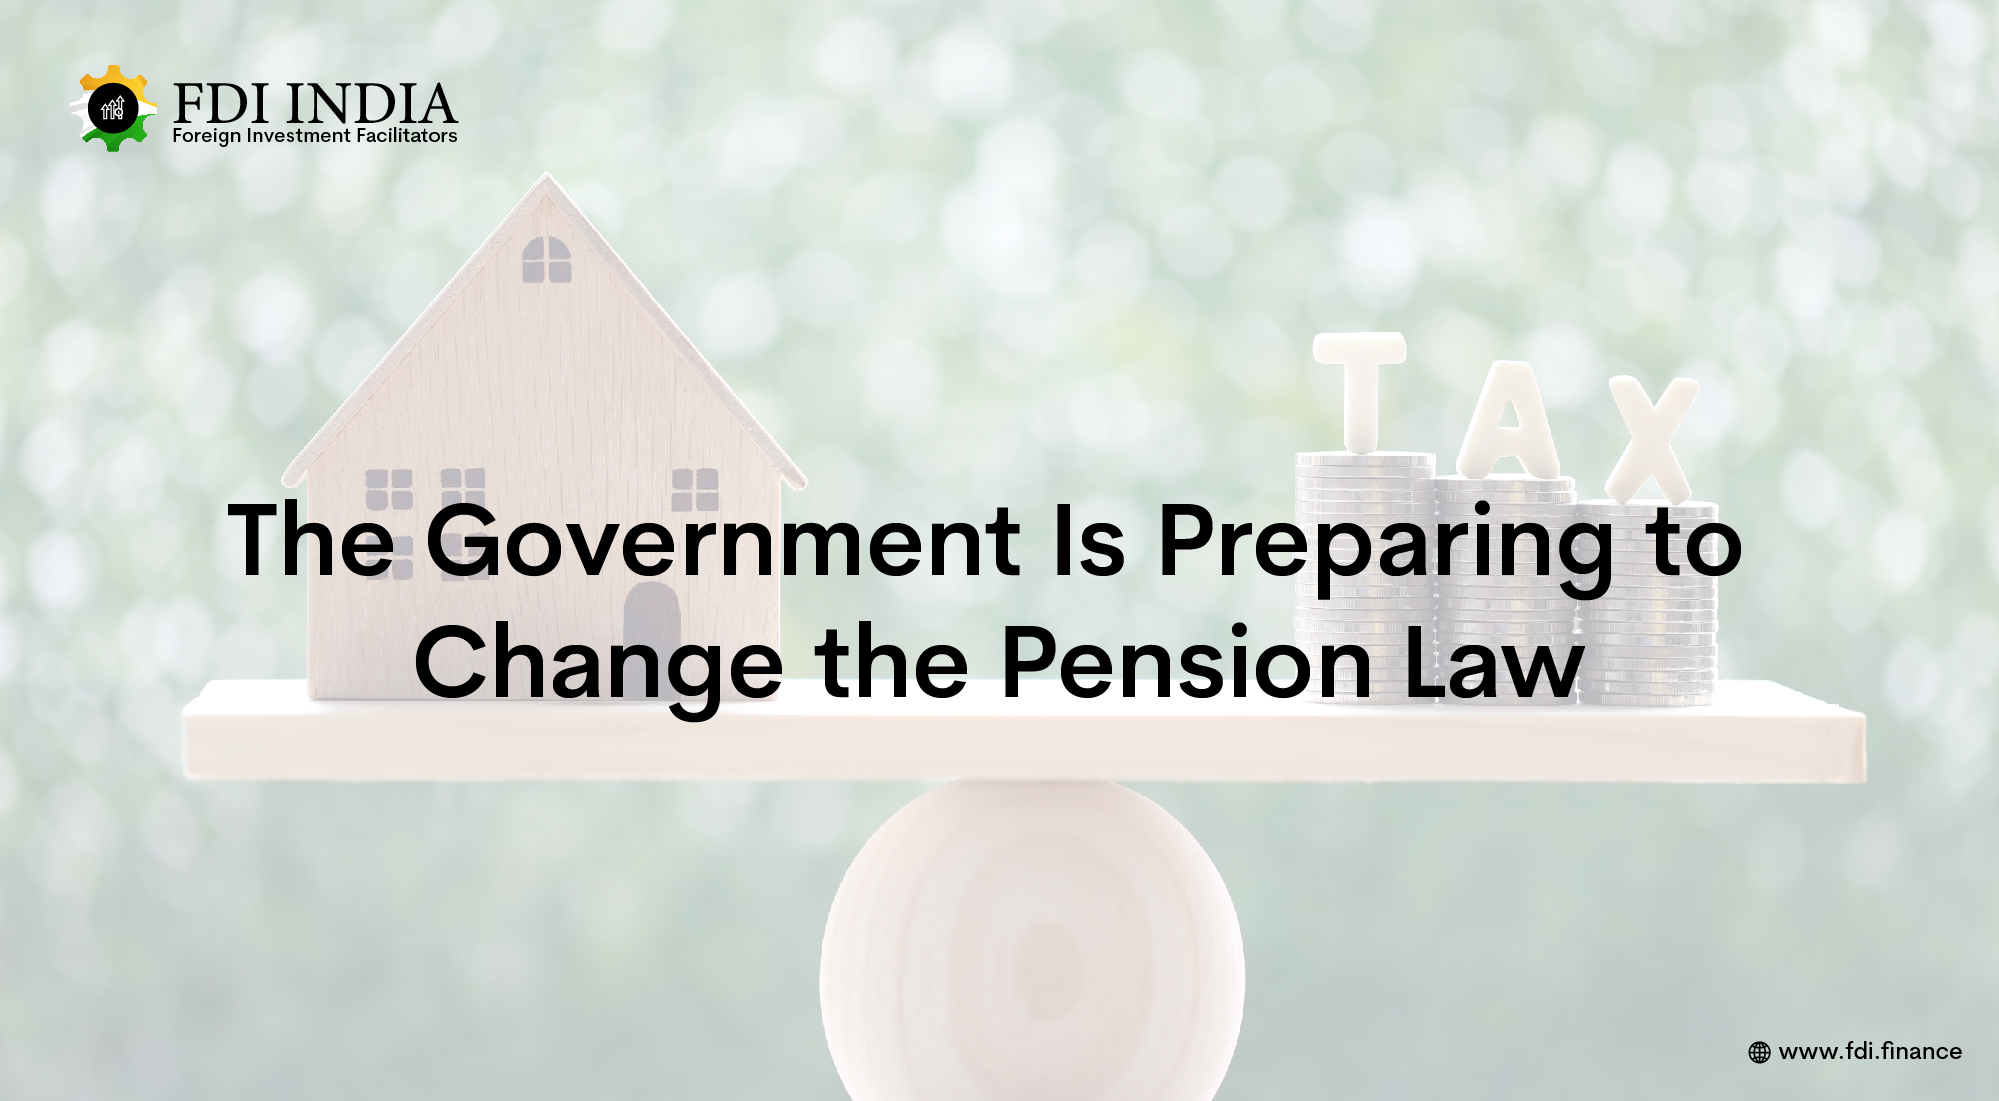 The Government Is Preparing to Change the Pension Law